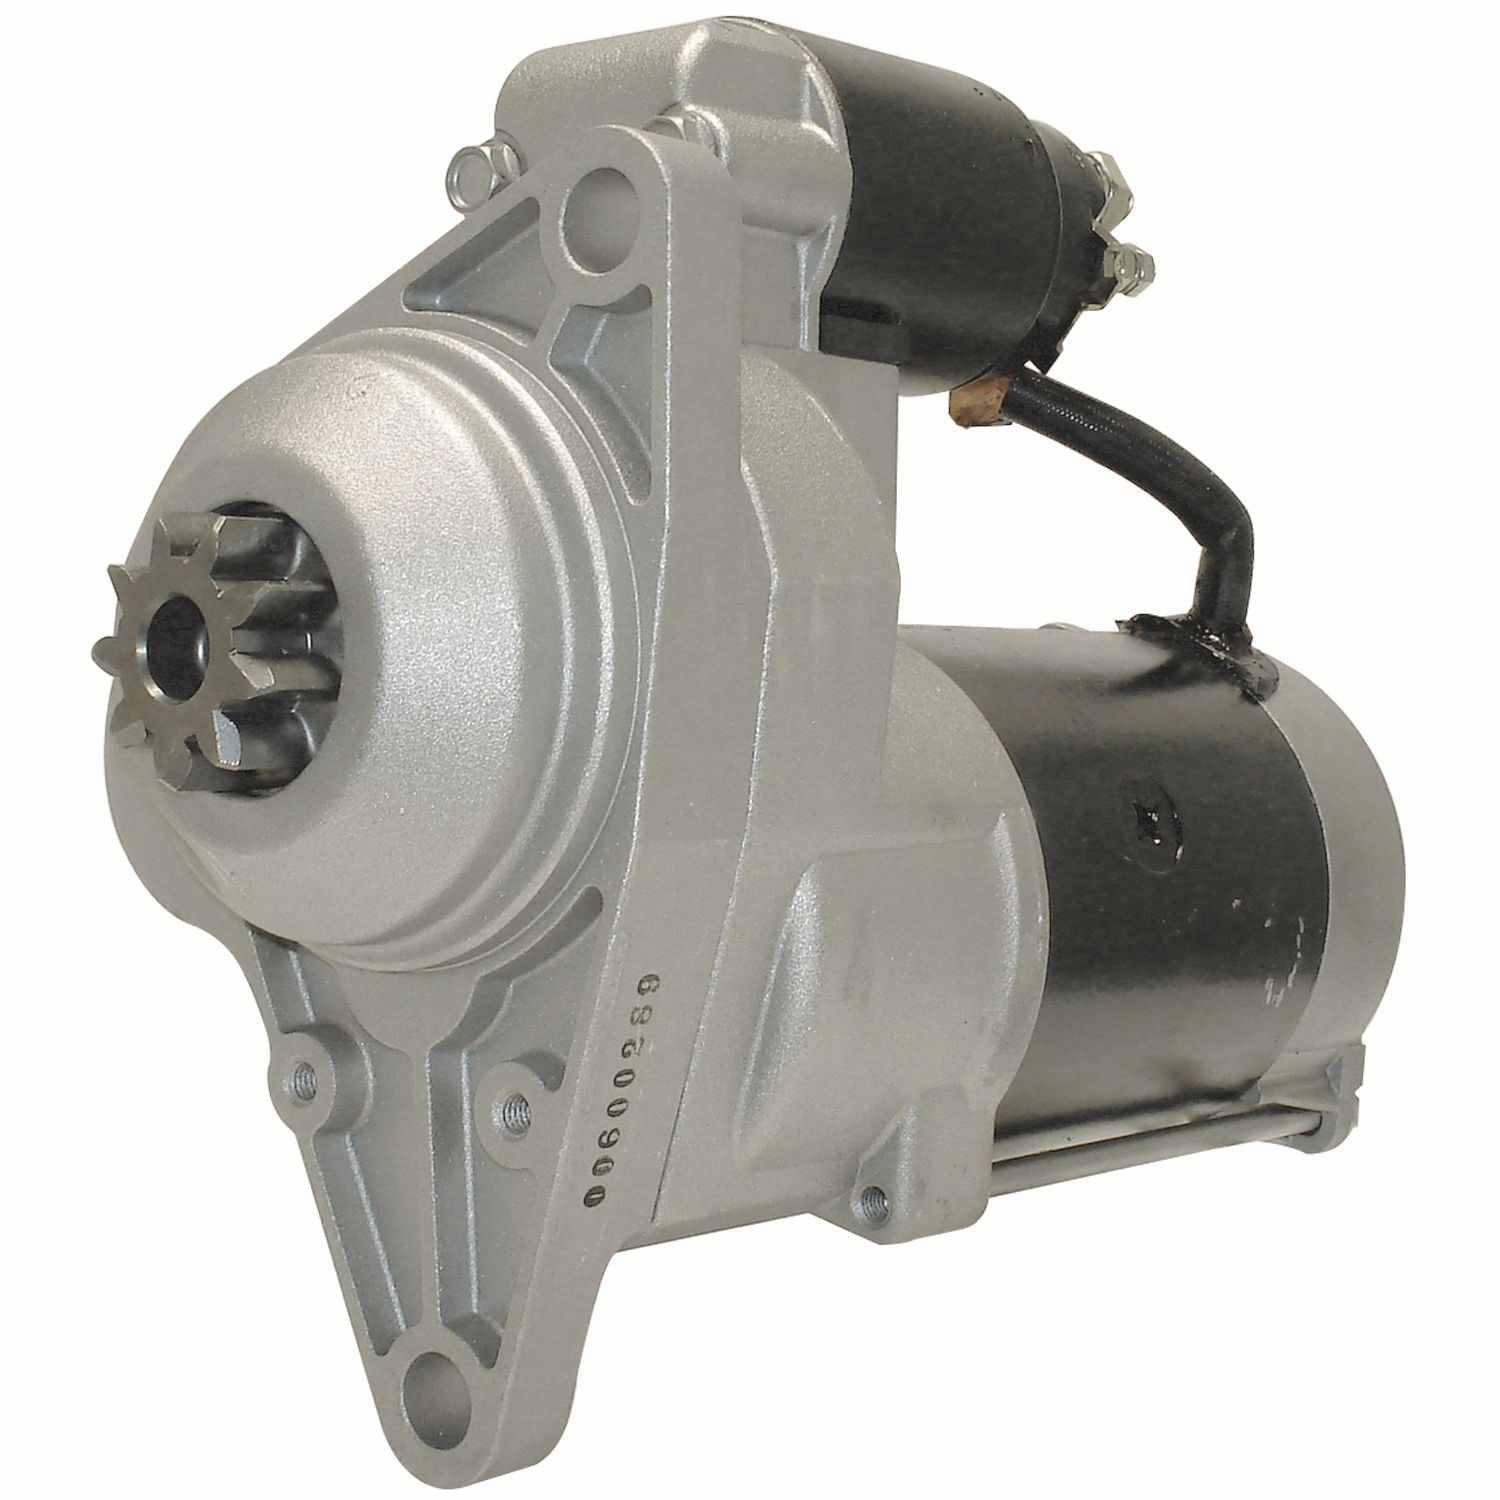 ACDELCO GOLD/PROFESSIONAL - Reman Starter Motor - DCC 336-1737A